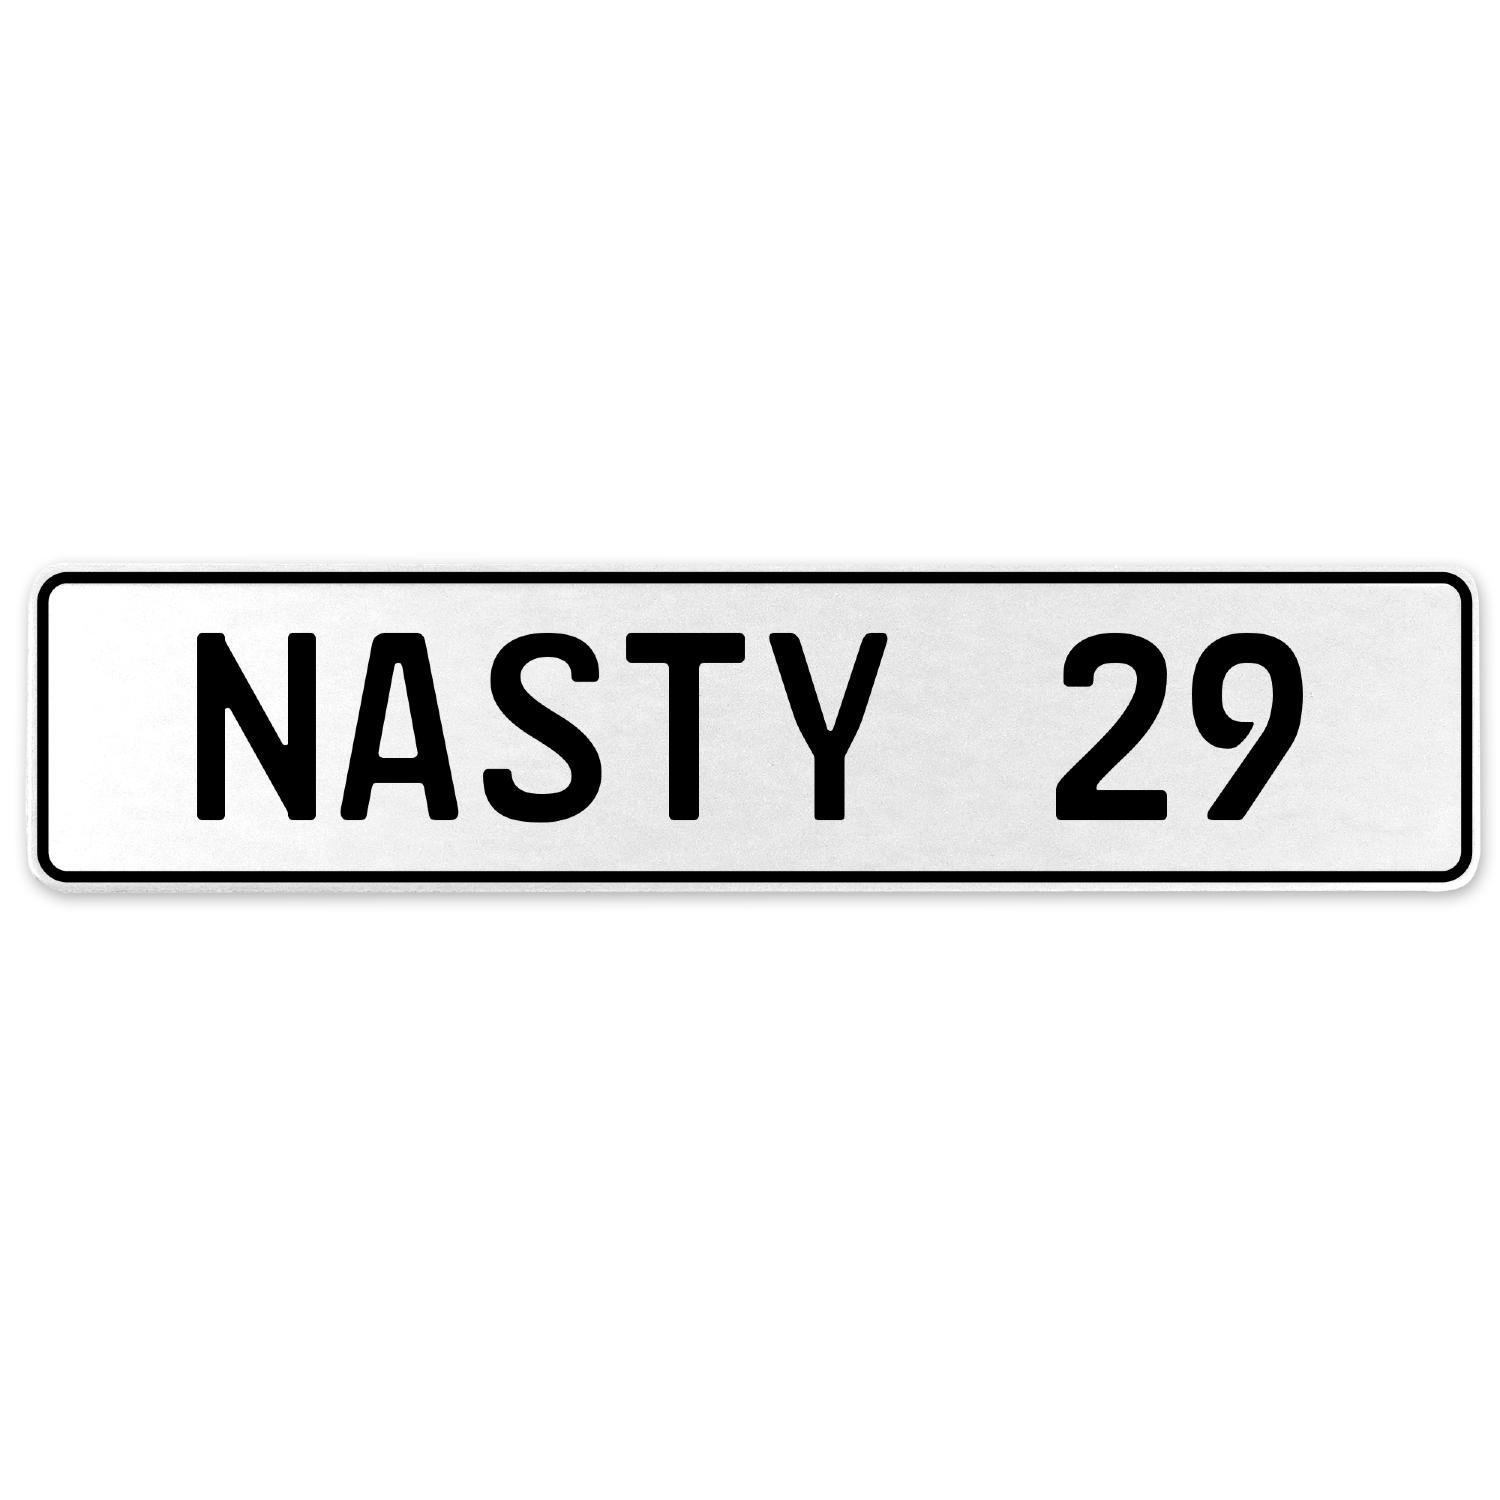 Vintage Parts 556903 Nasty 29 White Stamped Aluminum European License Plate